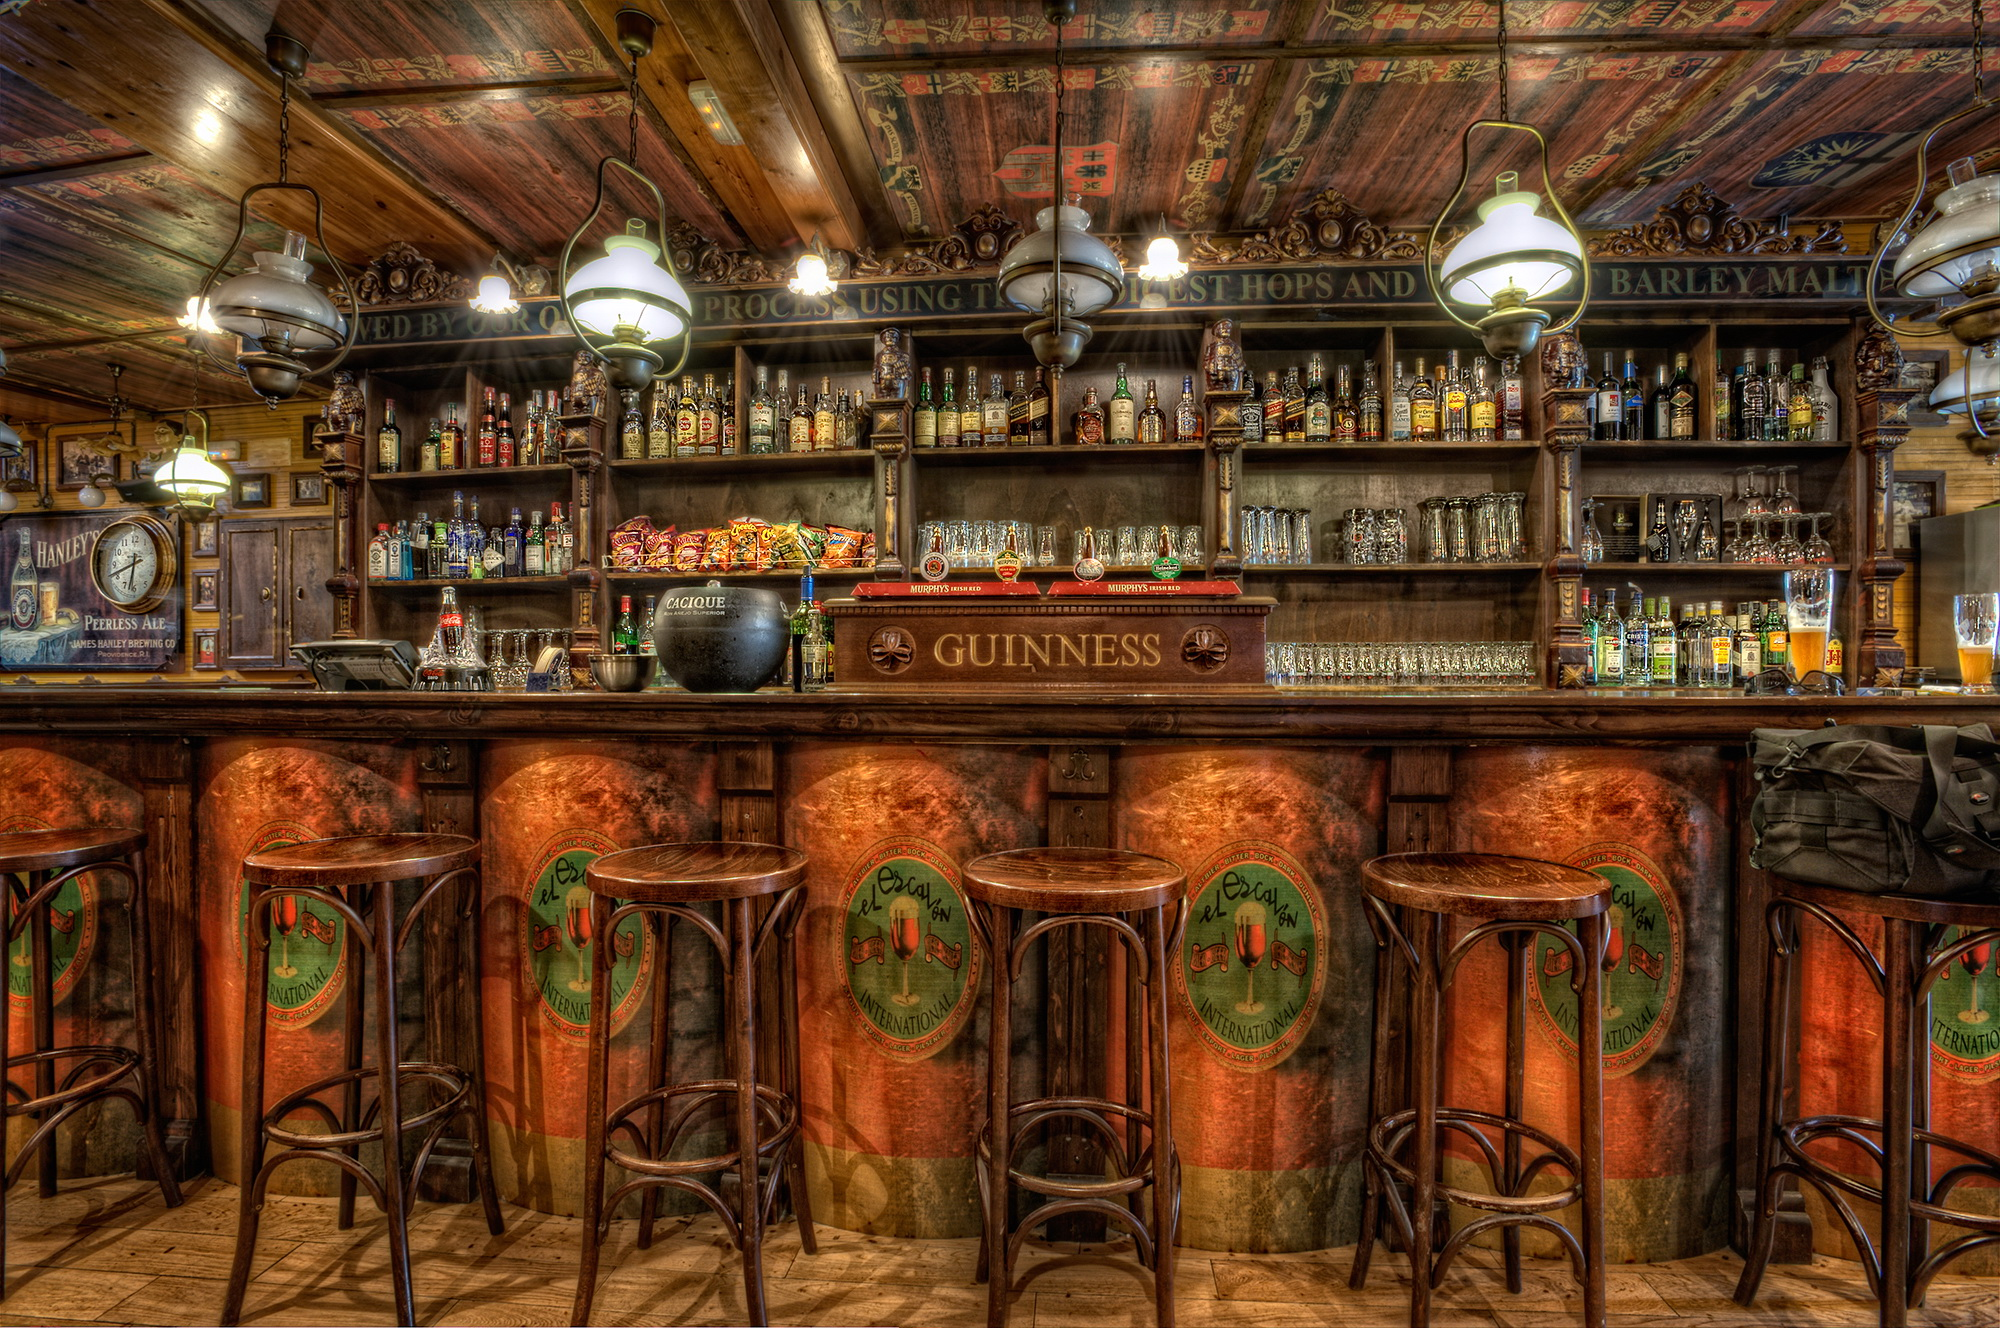 Chairs Ceiling Hdr Design Wooden Bar Room Wallpaper Background 2000x1328